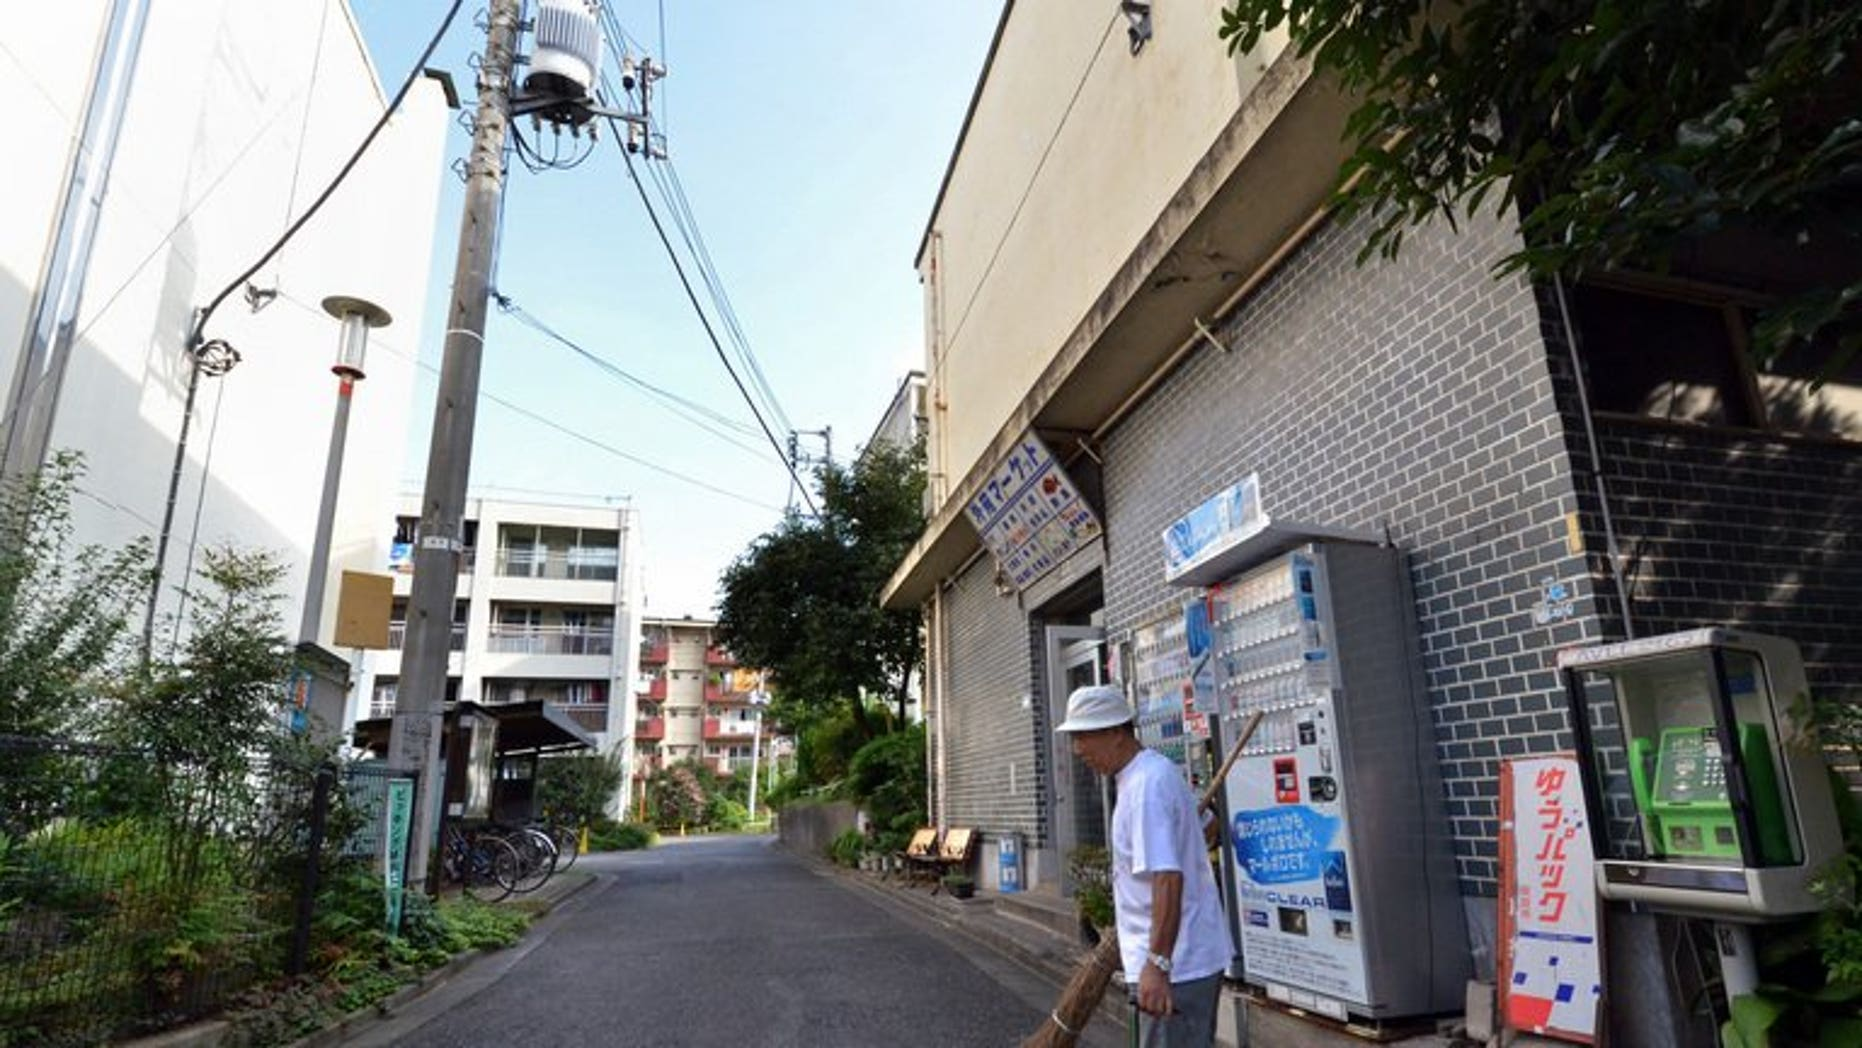 In this picture taken on September 14, 2013, 79-year-old resident Kohei Jinno sweeps and cleans a road before his apartment complex near the rebuilt national stadium in Tokyo.